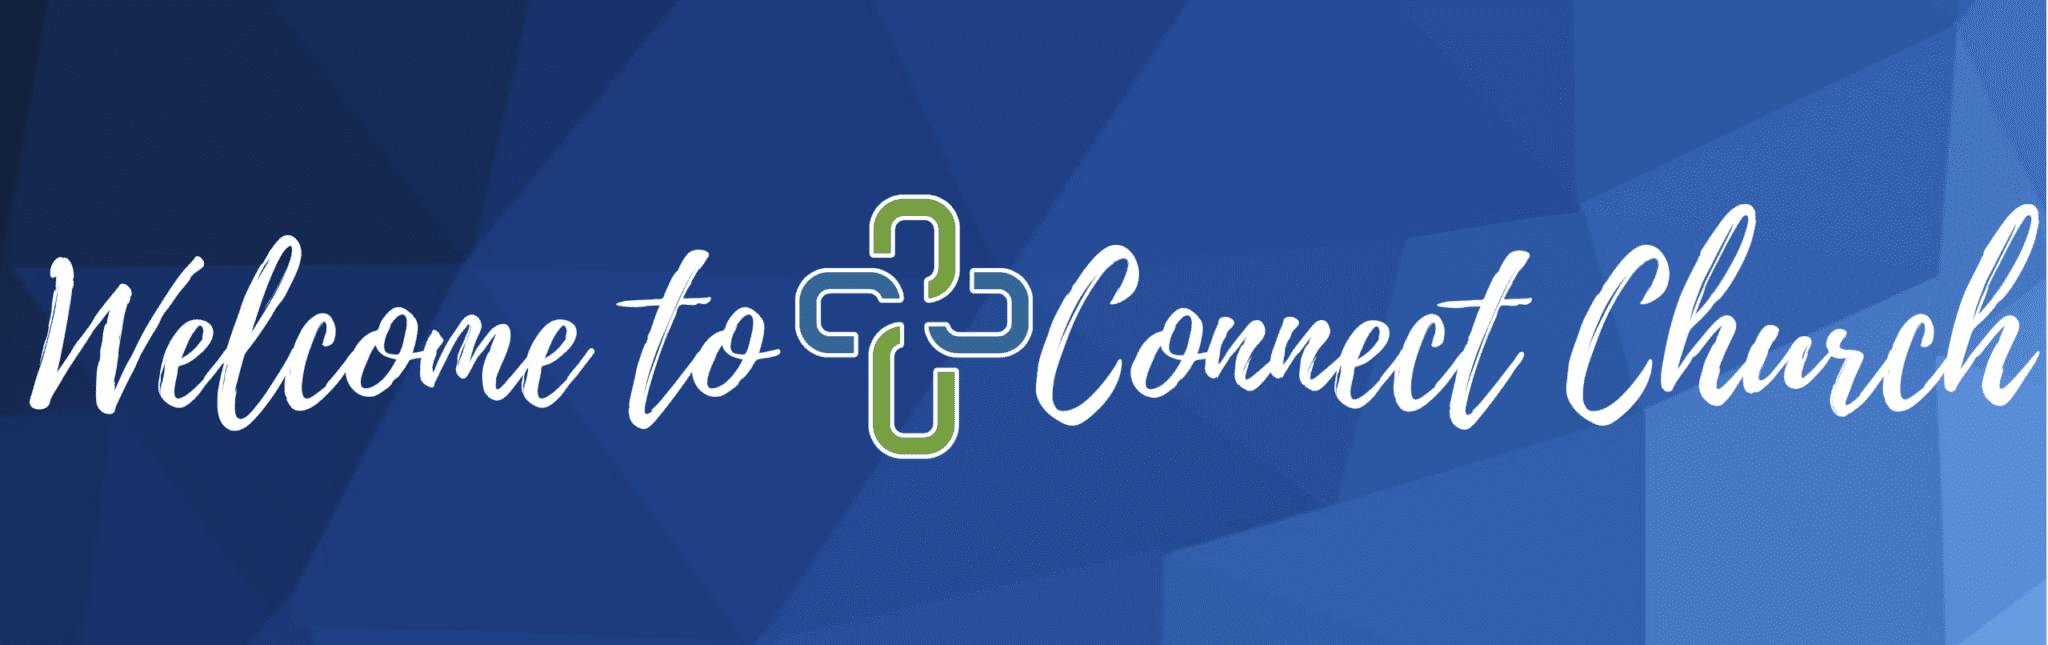 Welcome to Connect Church Website Banner